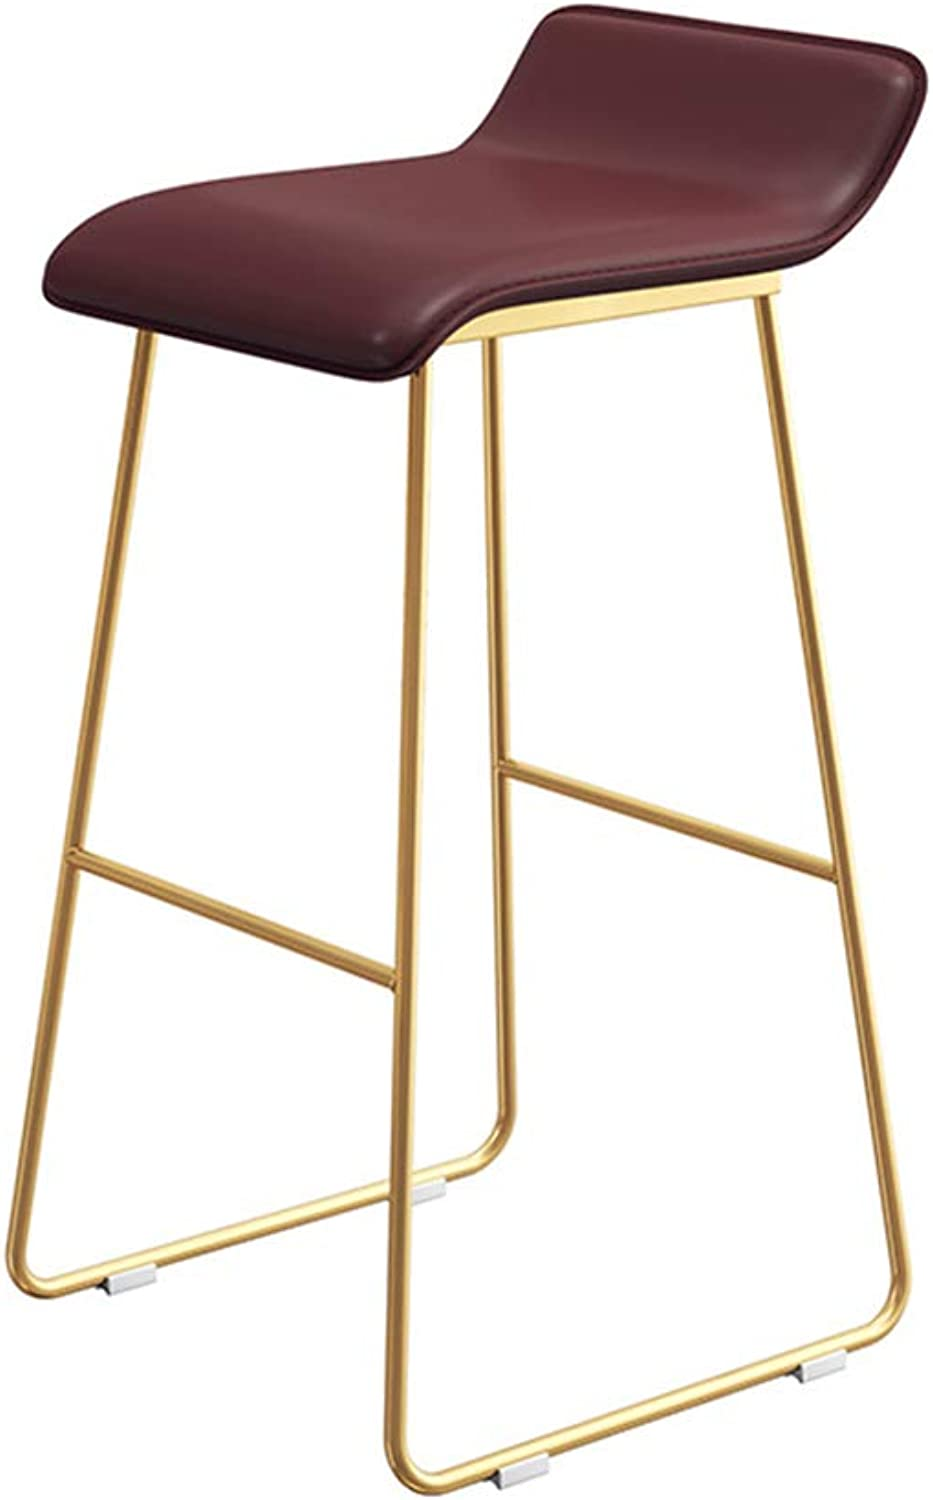 Metal High Stools Upholstered Barstools PU Leather Bar Stools Breakfast Dining Chairs Counter Bar Chairs Modern Nordic for Pub Kitchen Cafe